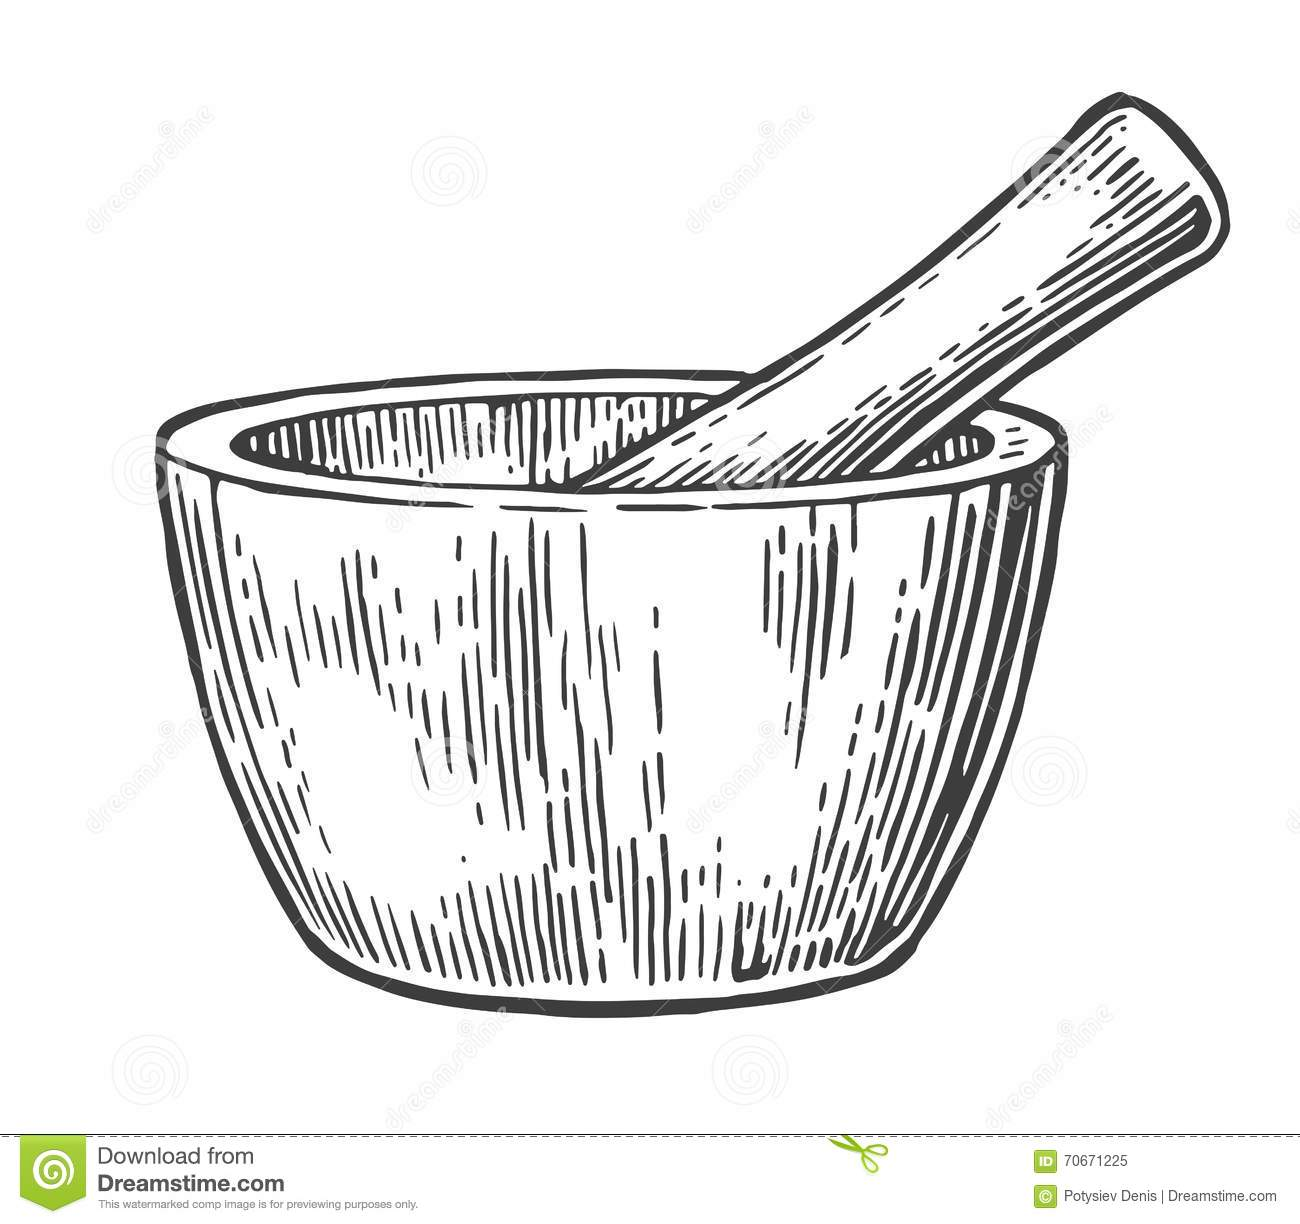 Mortar And Pestle. Vintage Vector Engraved Illustration. Stock ... for Mortar And Pestle Drawing  568zmd